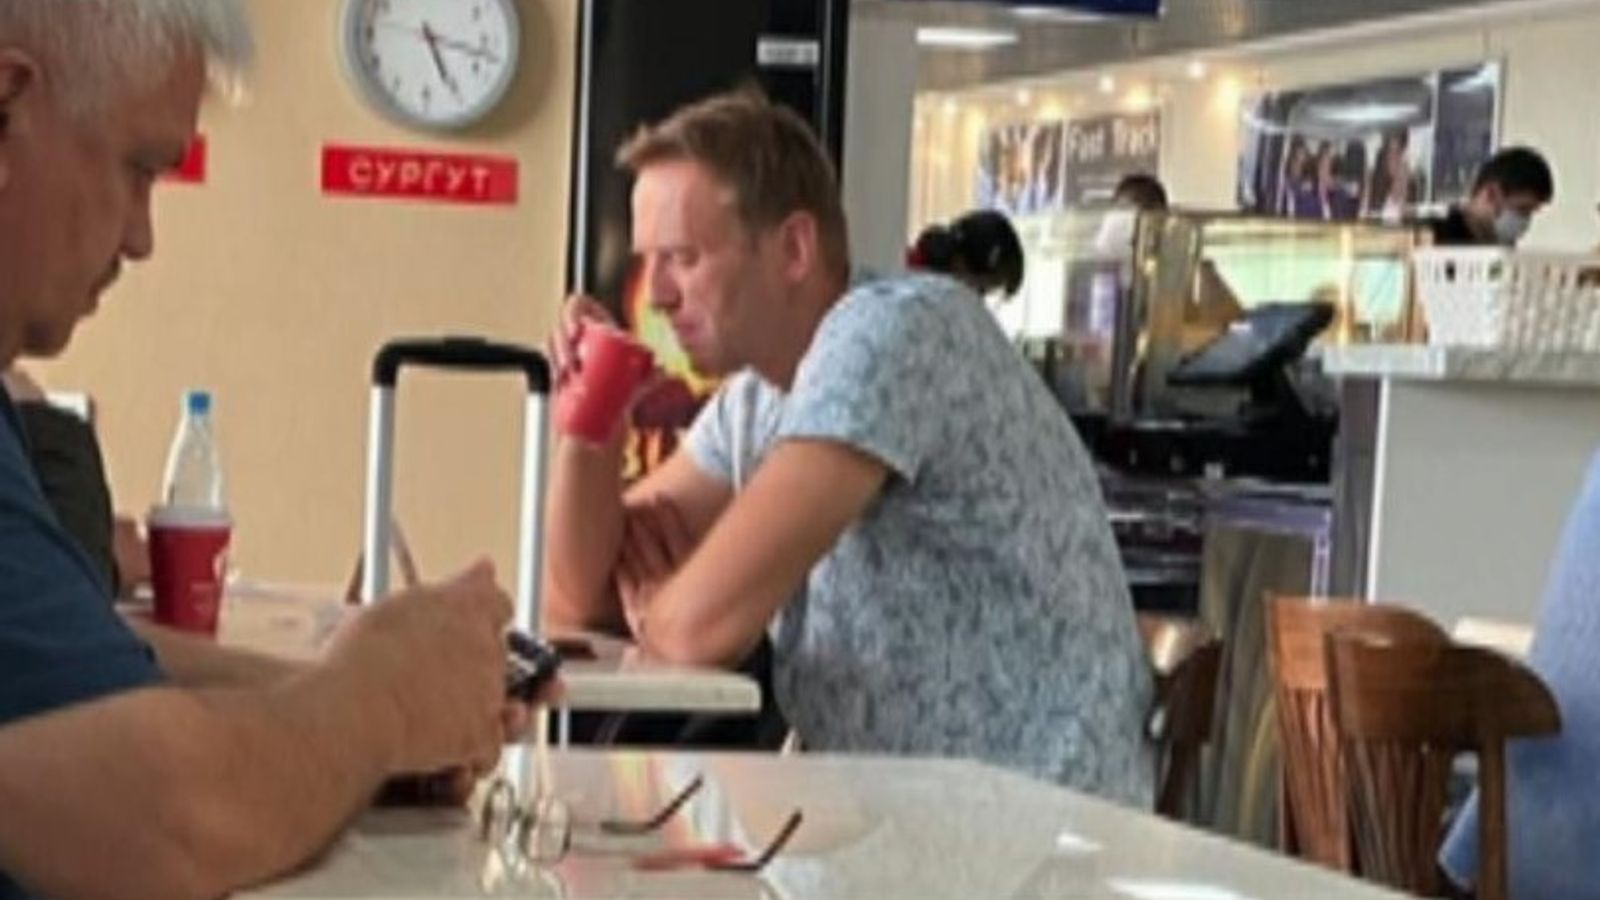 Alexei Navalny is seen at a Siberian airport before boarding the plane where he was taken ill. Pic: @djpavlin